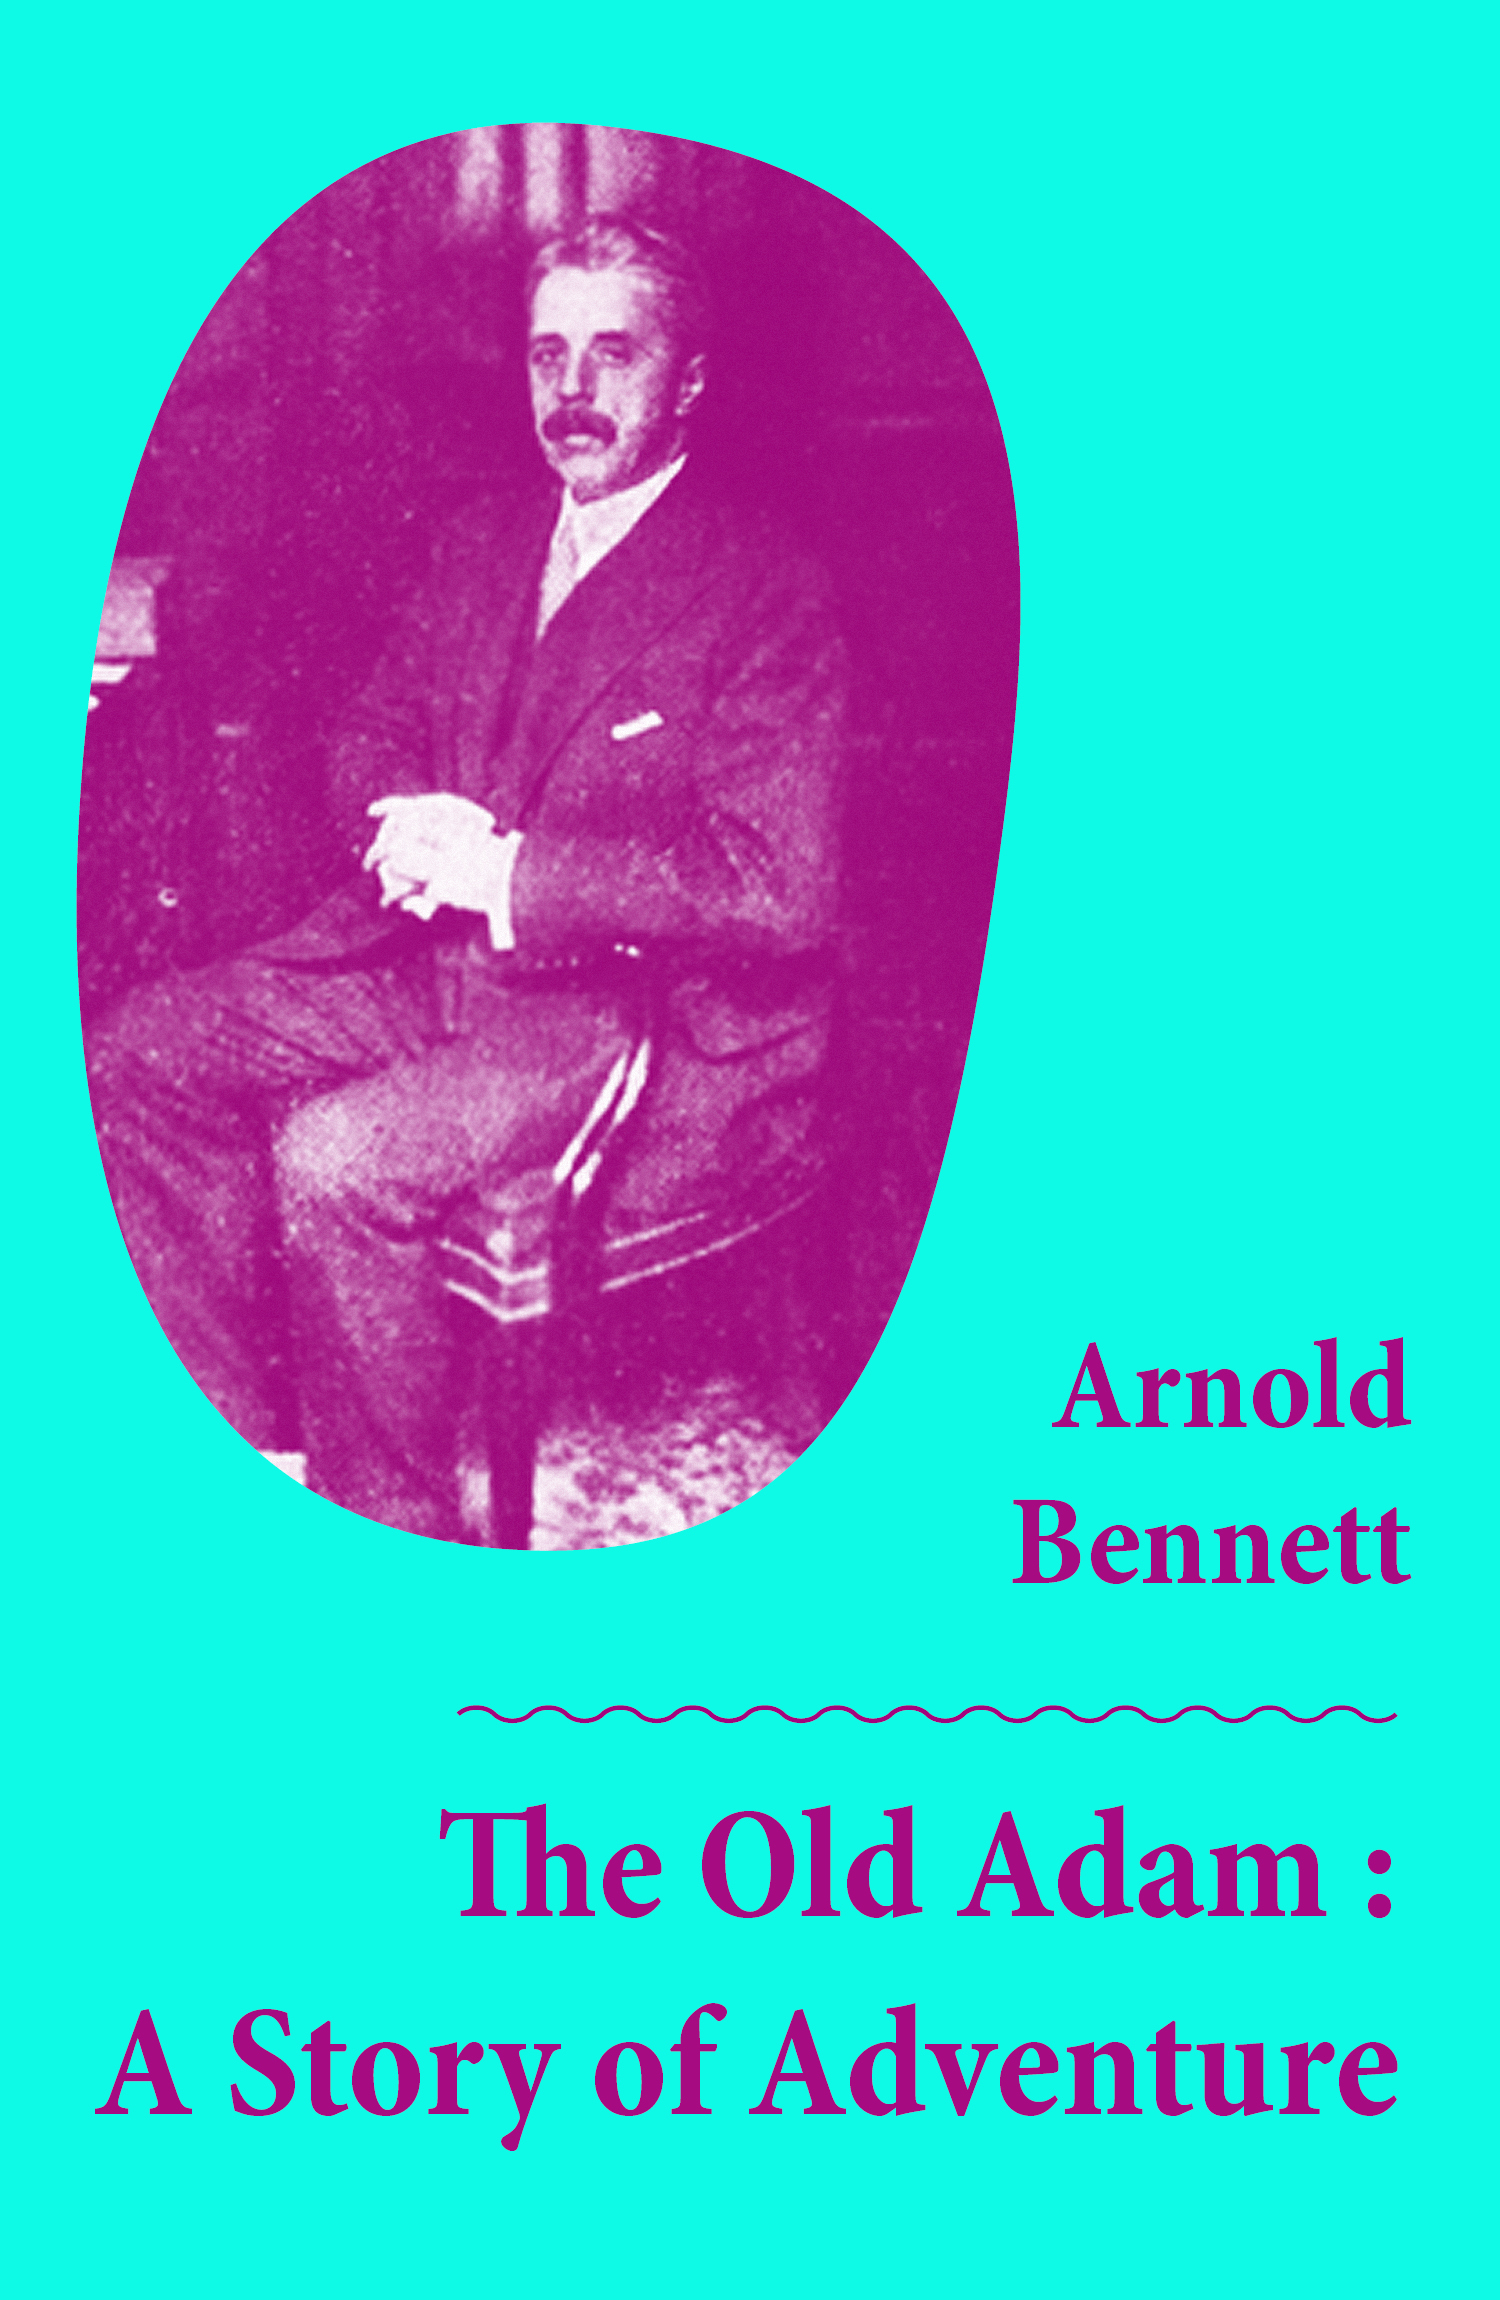 The Old Adam : A Story of Adventure (Unabridged)